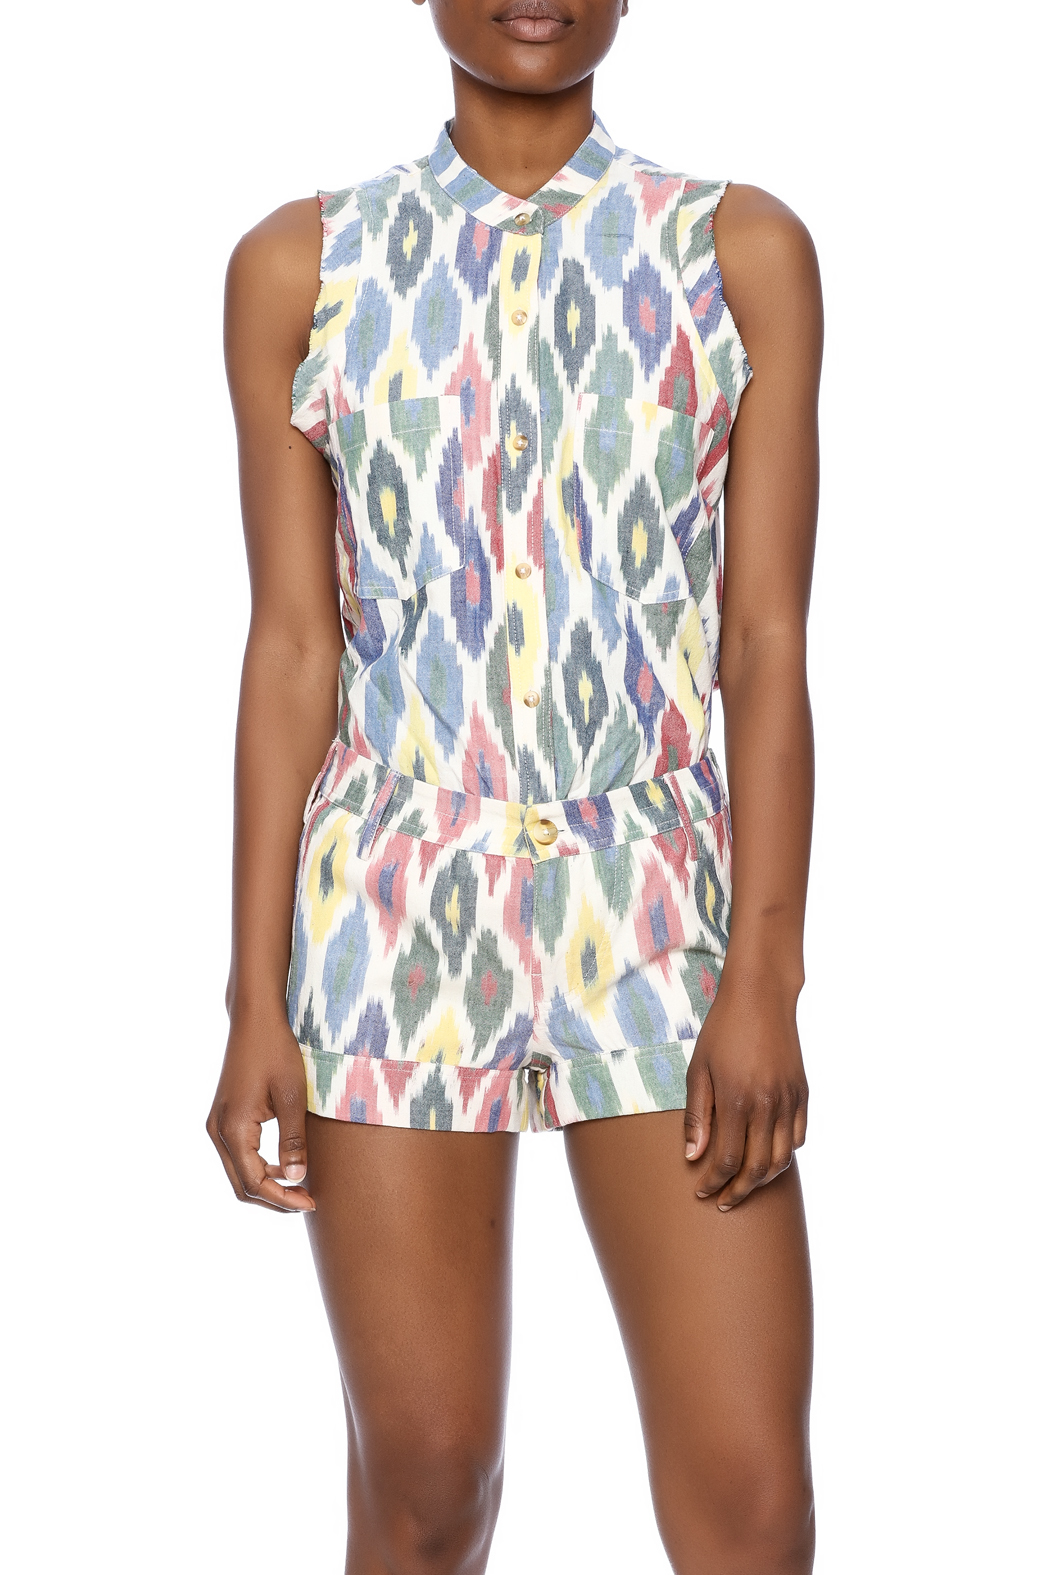 The ODells Ikat Tie-Up Top - Side Cropped Image